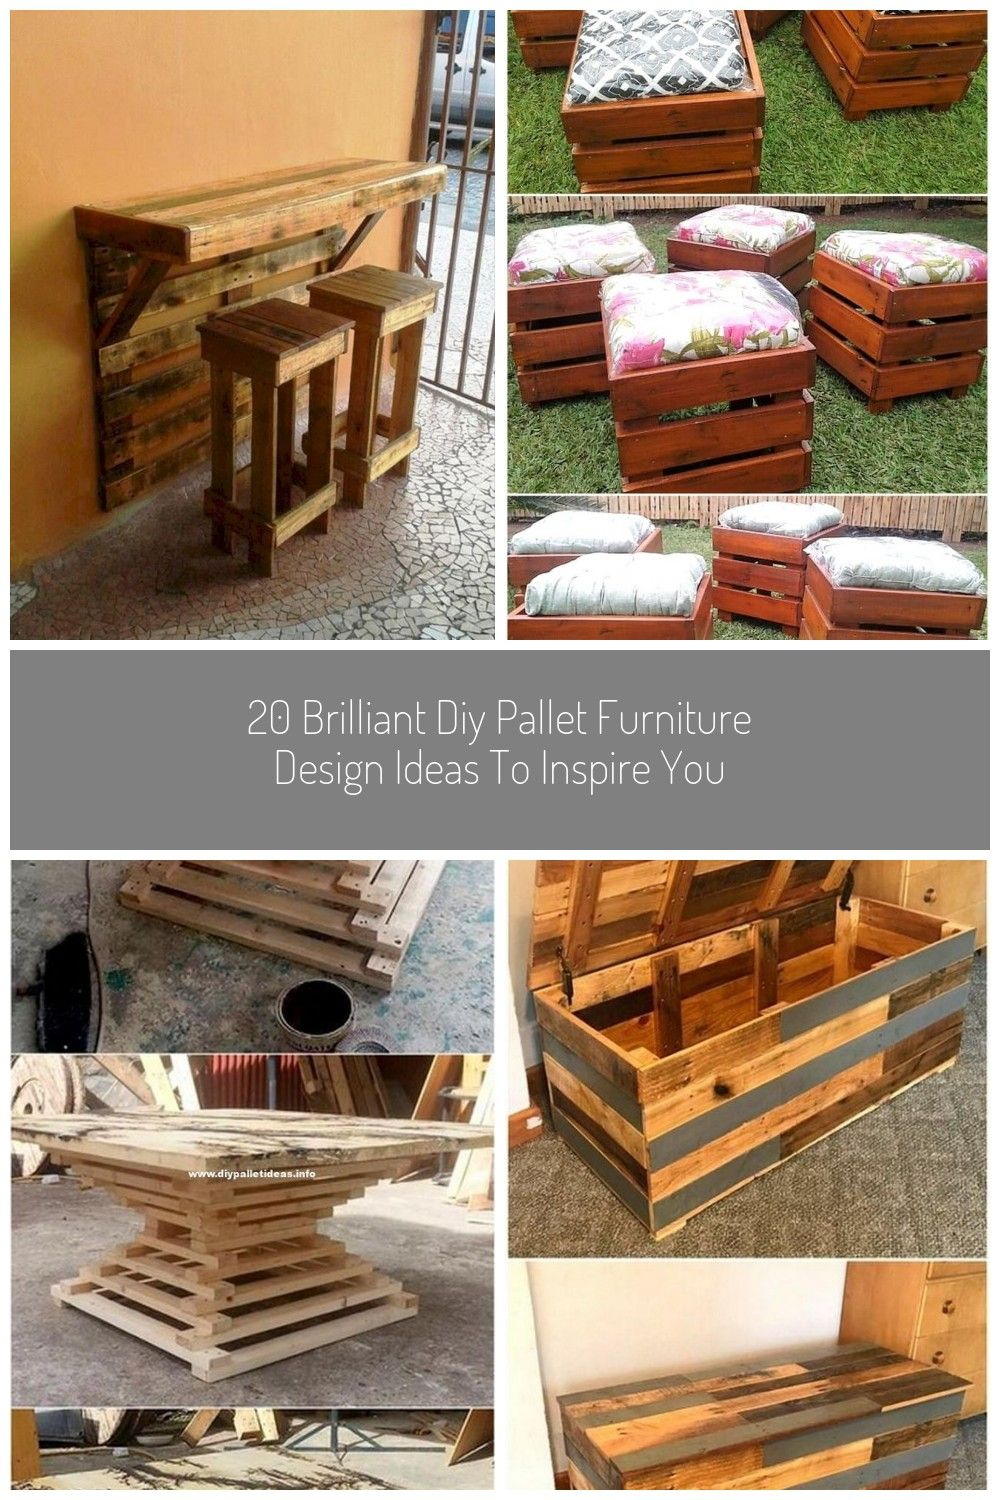 20 brilliant diy pallet furniture design ideas to inspire